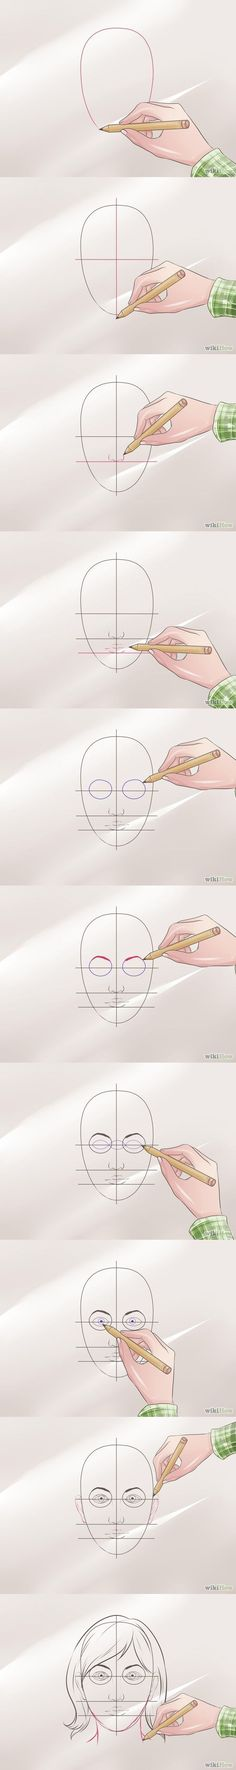 How to draw a face Step by step tutorial Wikihow draw face drawing how to by olga Drawing Skills, Drawing Lessons, Drawing Techniques, Drawing Tips, Drawing Sketches, Art Lessons, Painting & Drawing, Sketching, Drawing Ideas